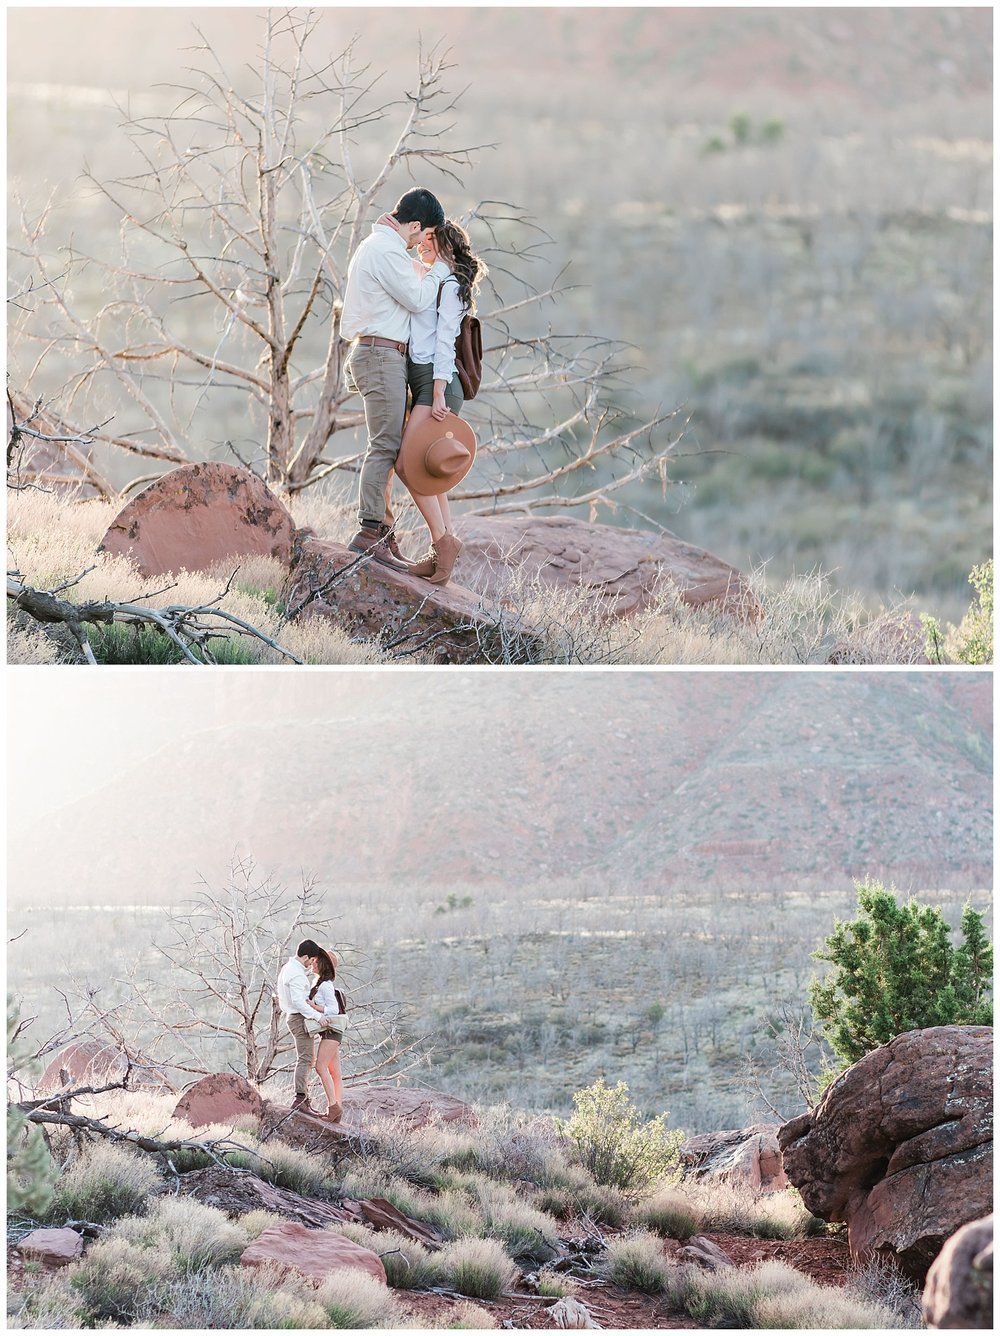 Elizabeth M Photography Northern Virginia Destination Wedding and Elopement Photographer Adventure Photography Zion National Park_0124.jpg